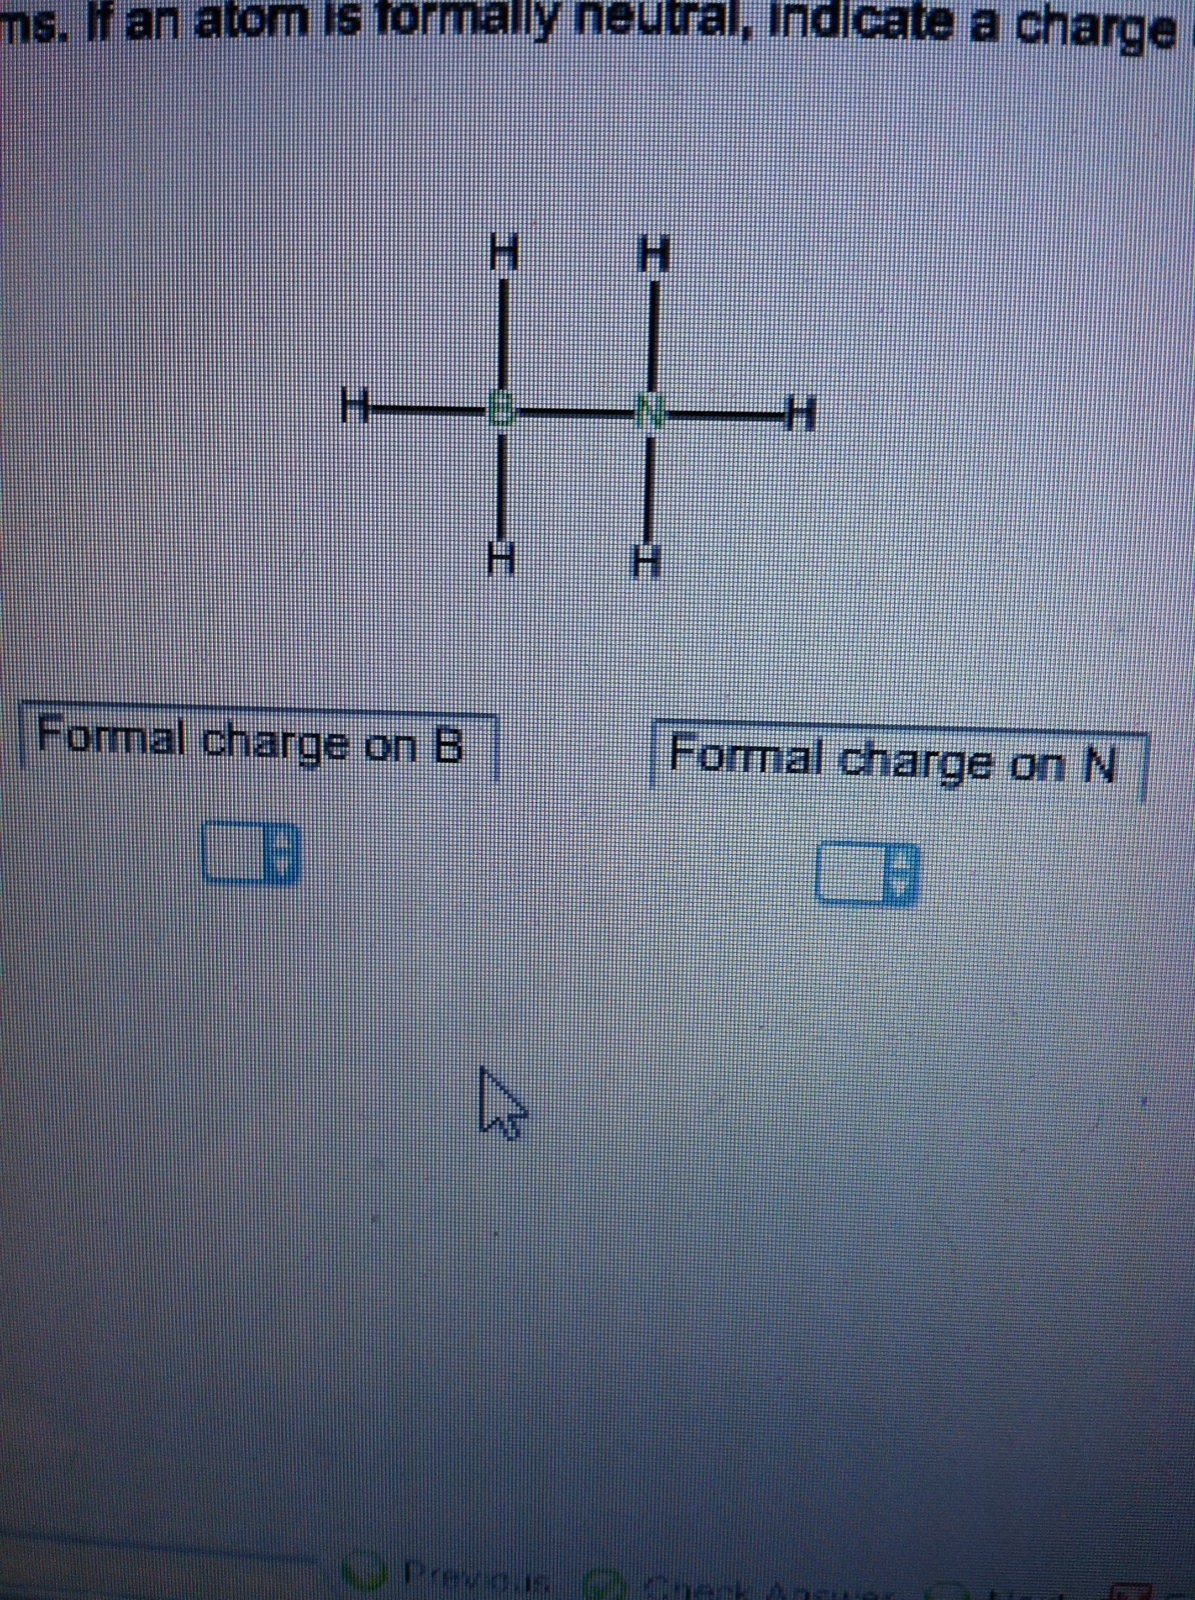 What is the formal charge on B and N? There is an